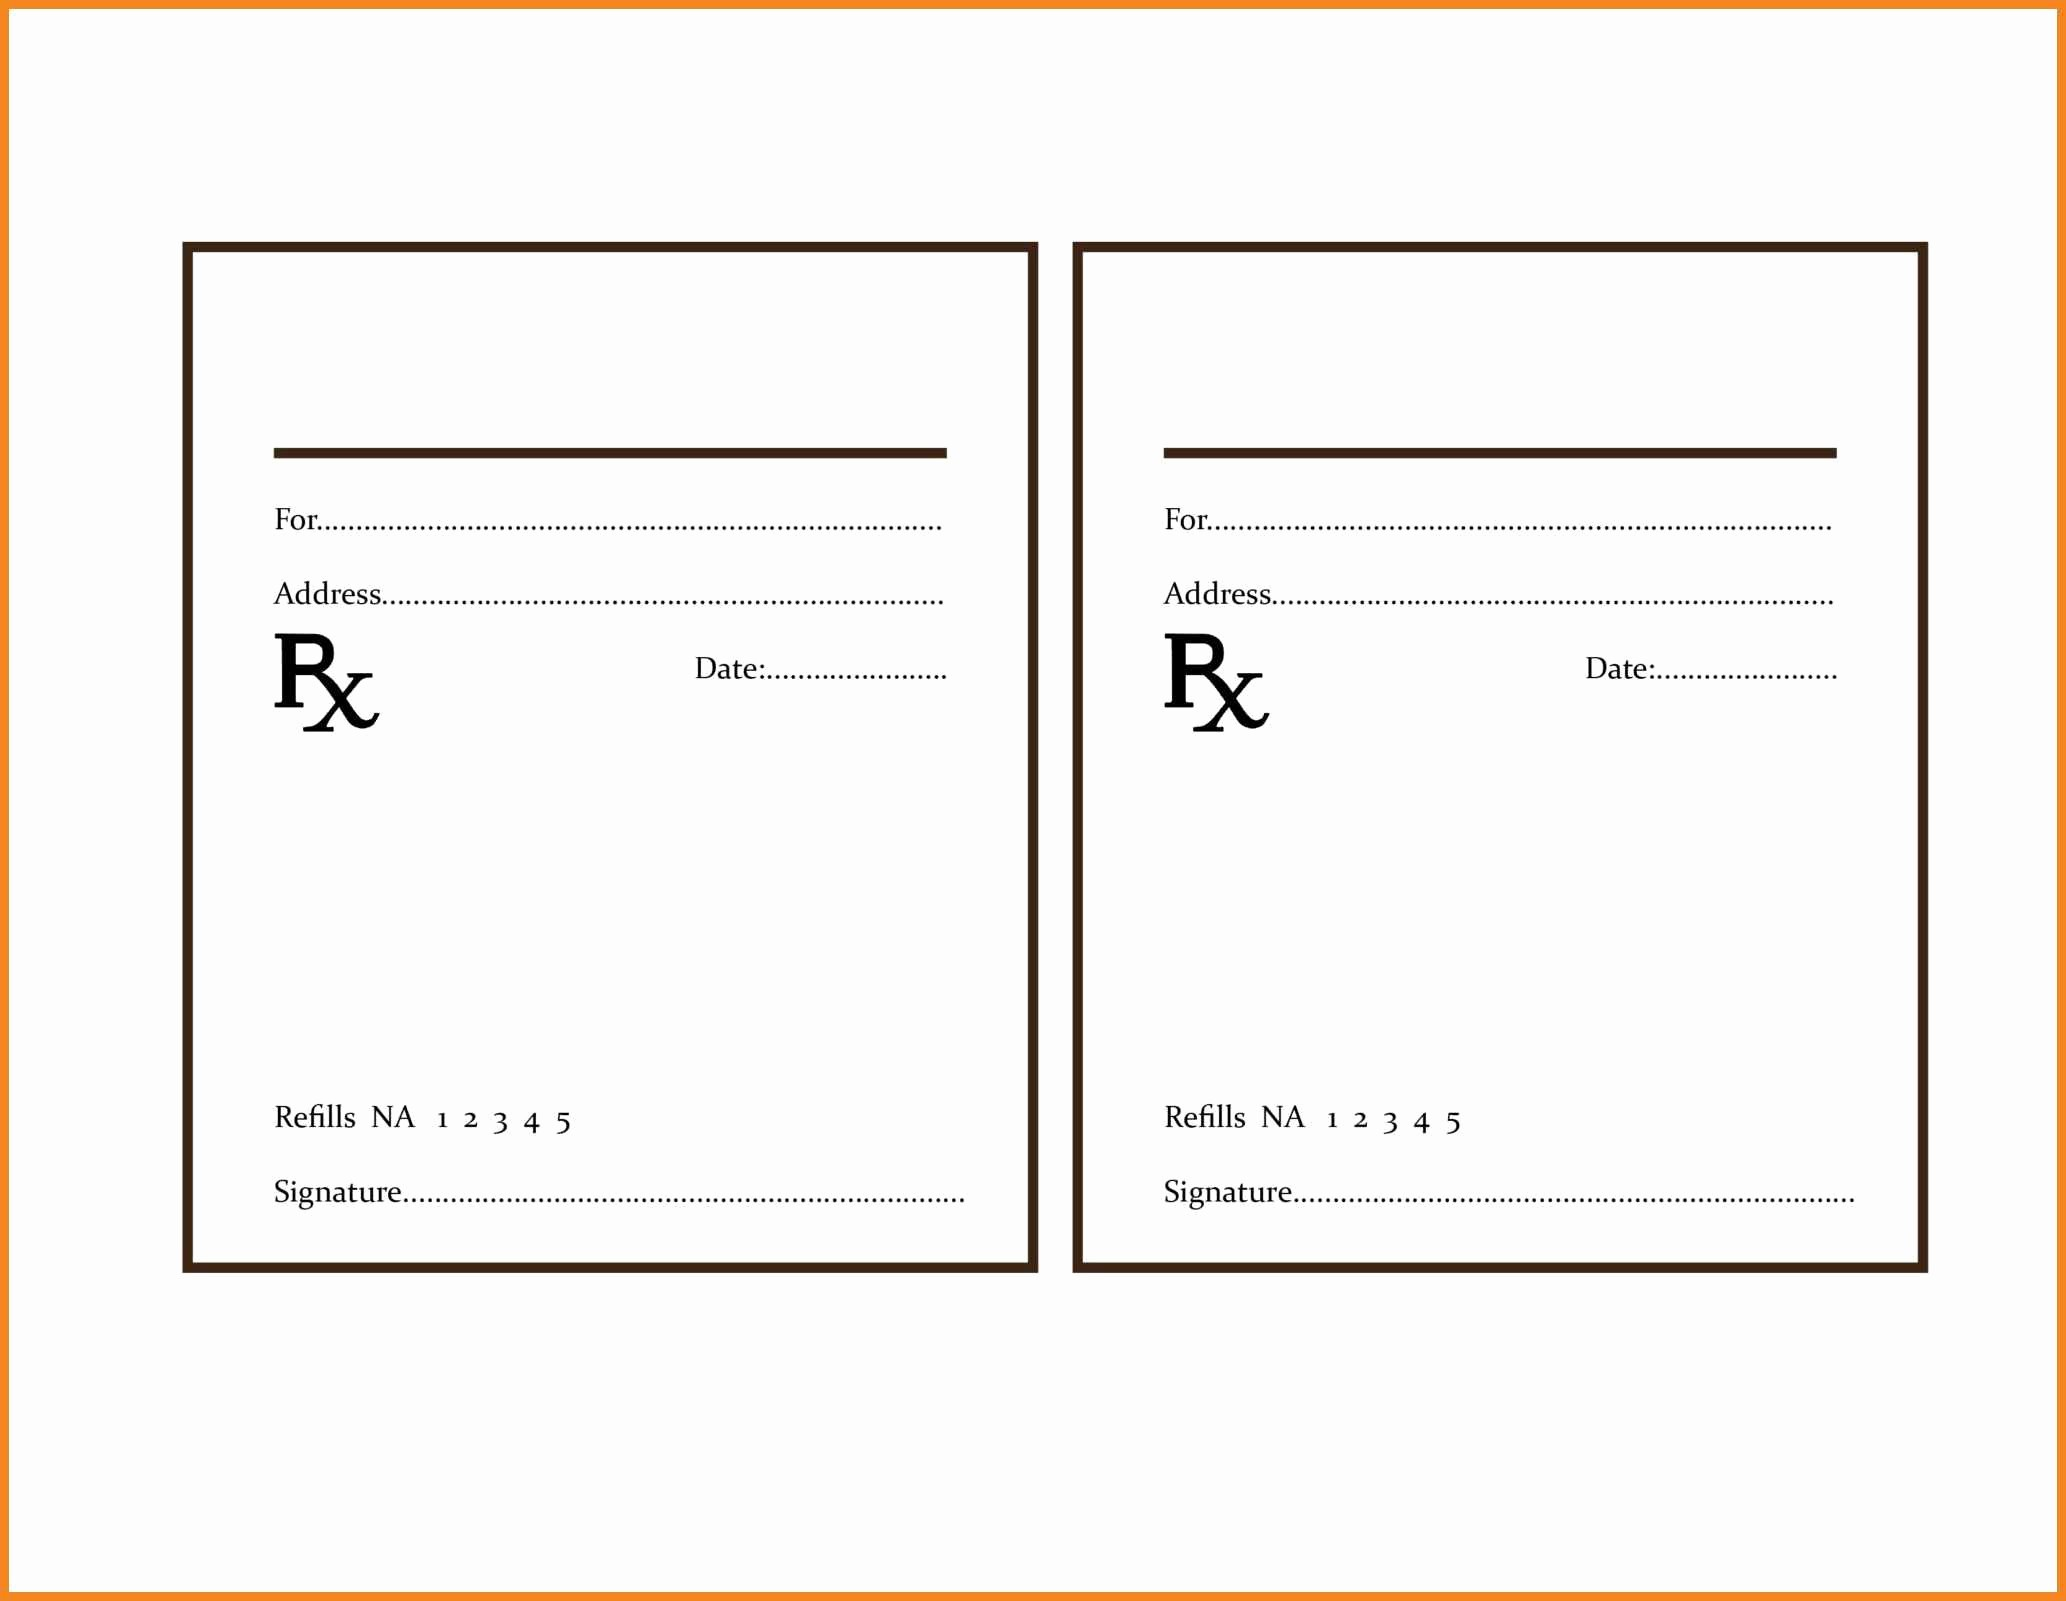 Drug Card Template Microsoft Word Inspirational Rx Template Templates Collections